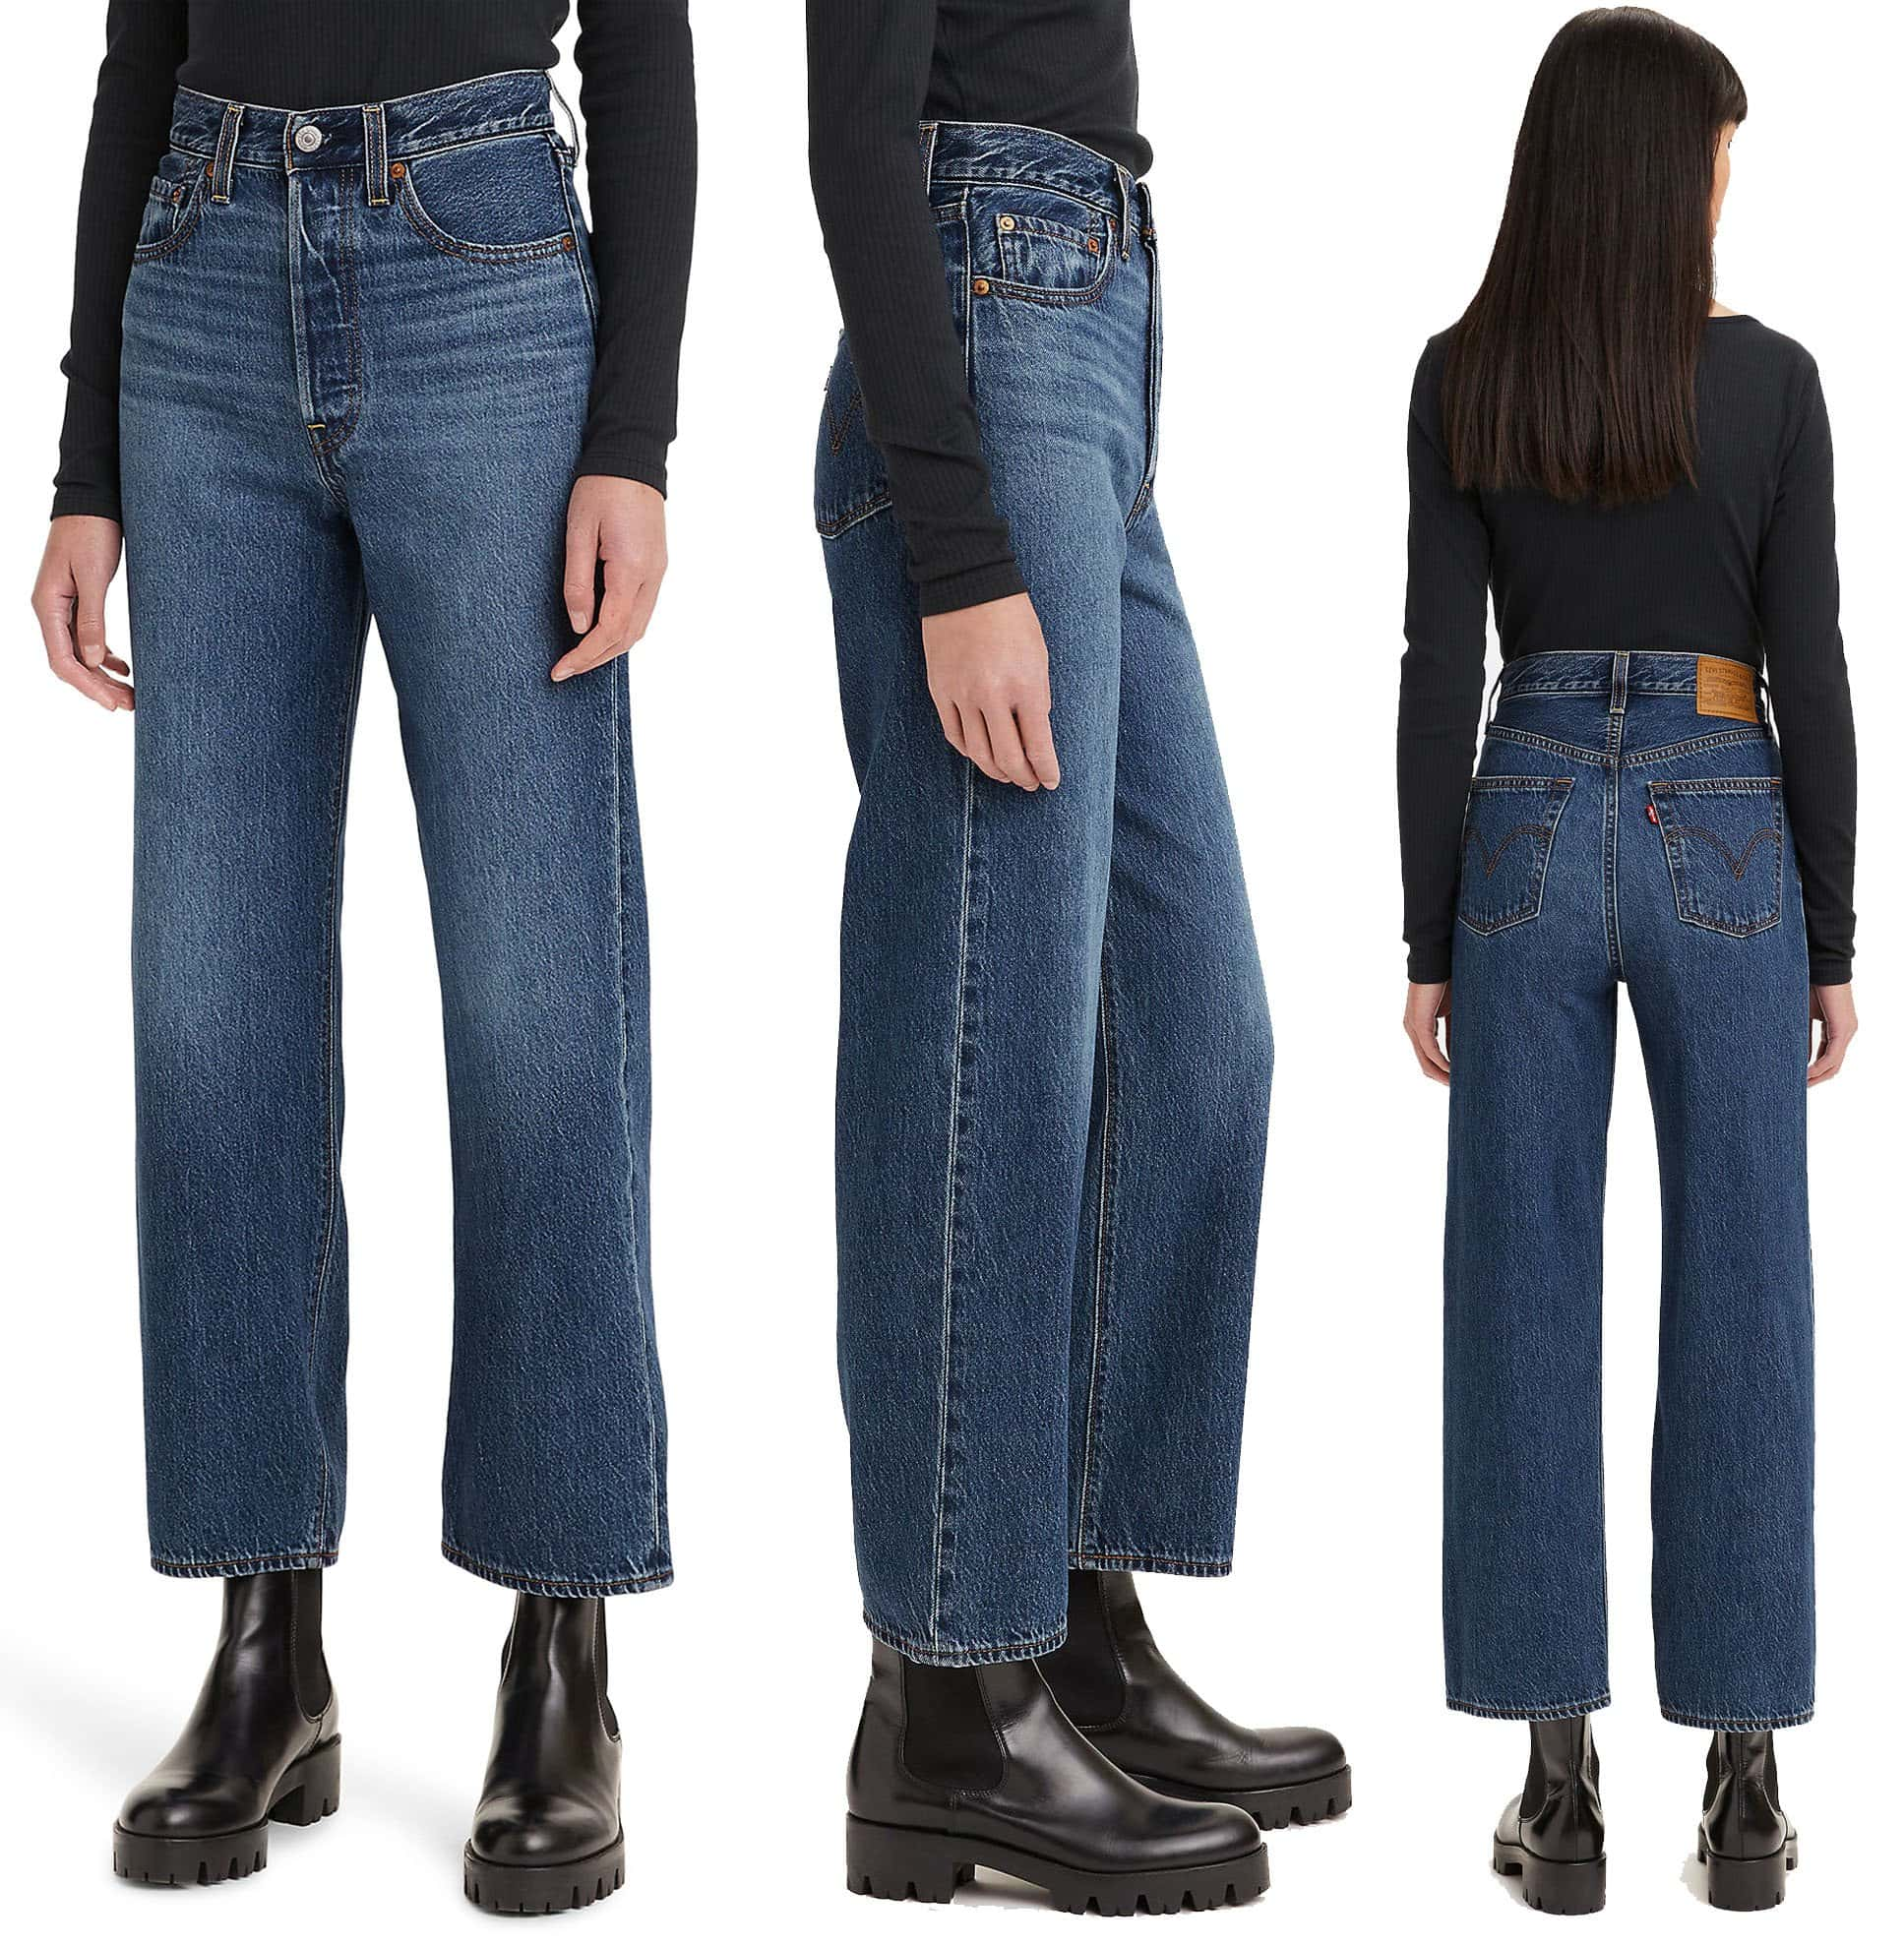 Available in several colorways, the Levi's Ribcage has 12-inch high-rise and an ankle-grazing straight-leg profile